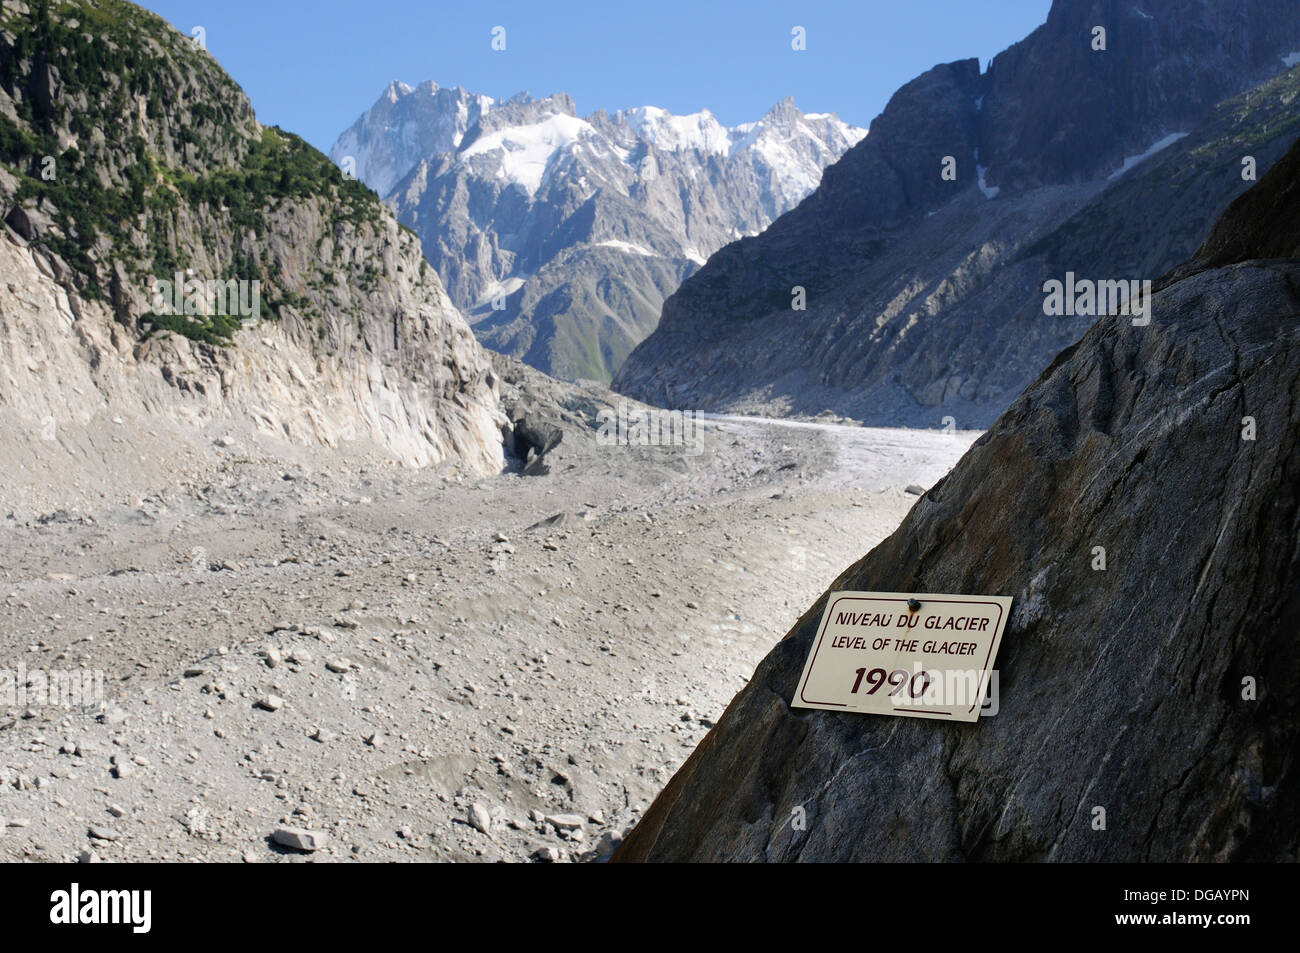 A sign showing the extent of glacial retreat recently - the Mer de Glace now far below the sign showing the level Stock Photo